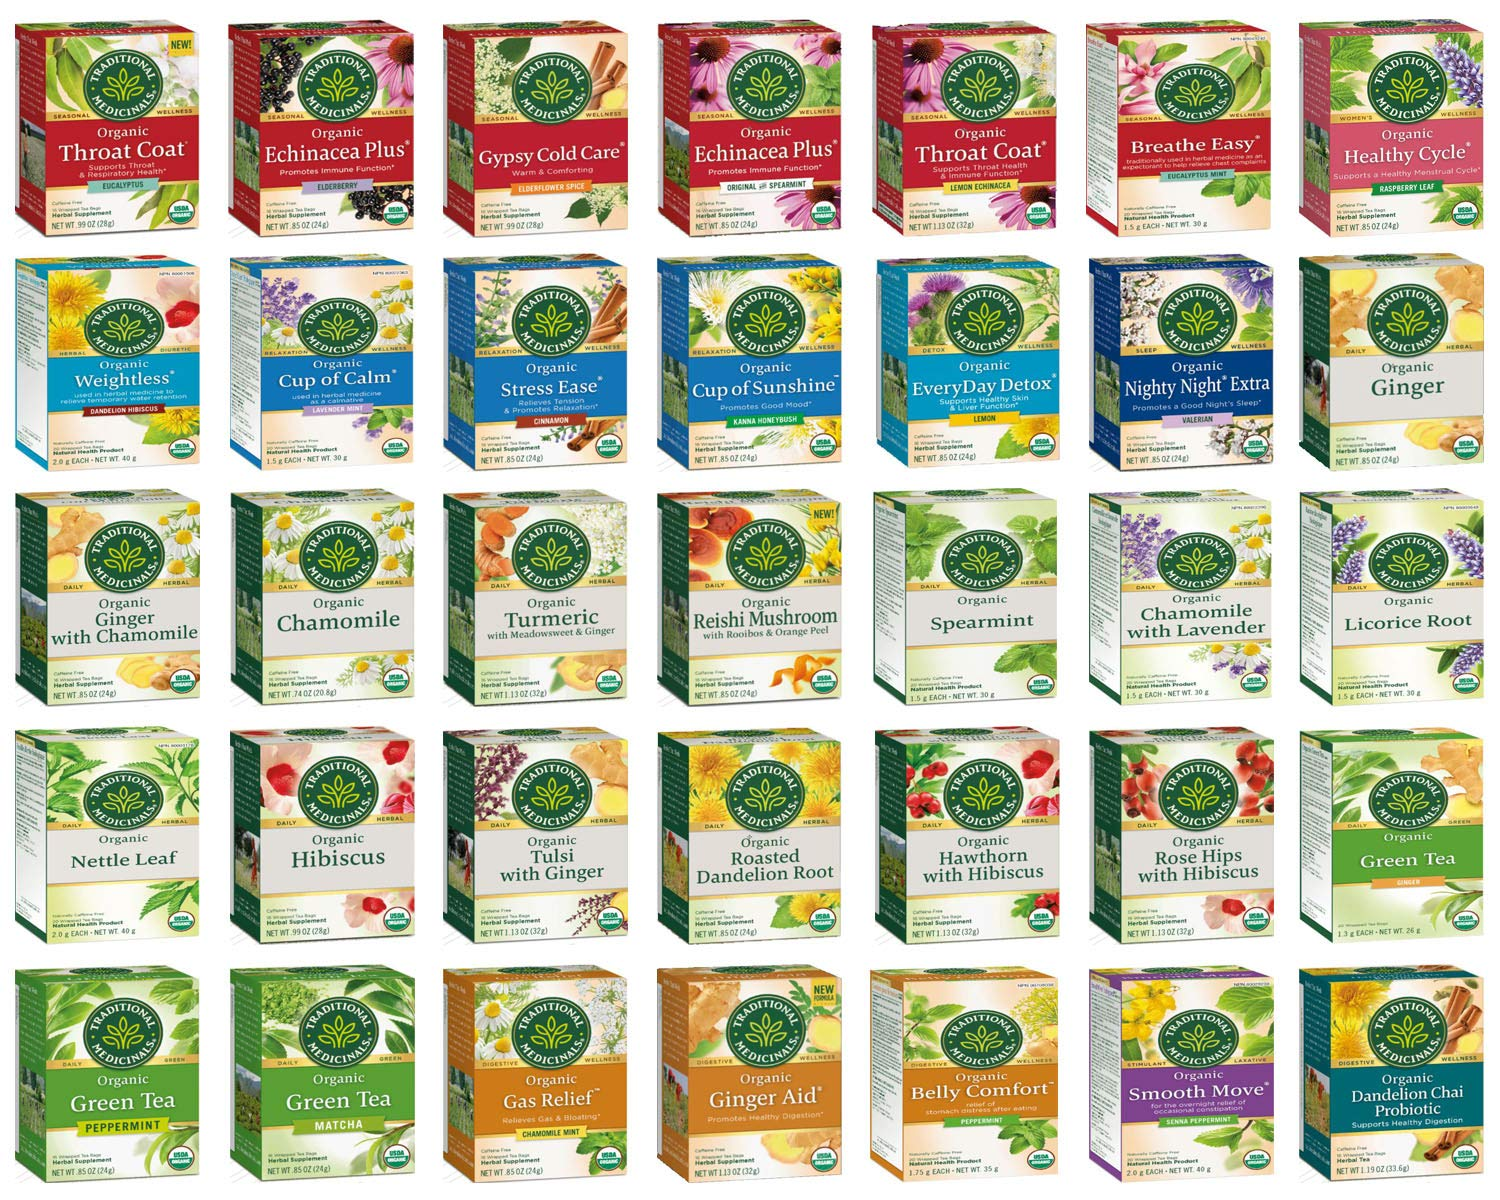 Traditional Medicinals Tea Bag Sampler - Unique Tea Sampler Variety with 70 Organic Herbal Teas - An Excellent Care Package or Gift Set - 35 Varieties - 70 Tea Bags Packaged in a Custom Gift Box